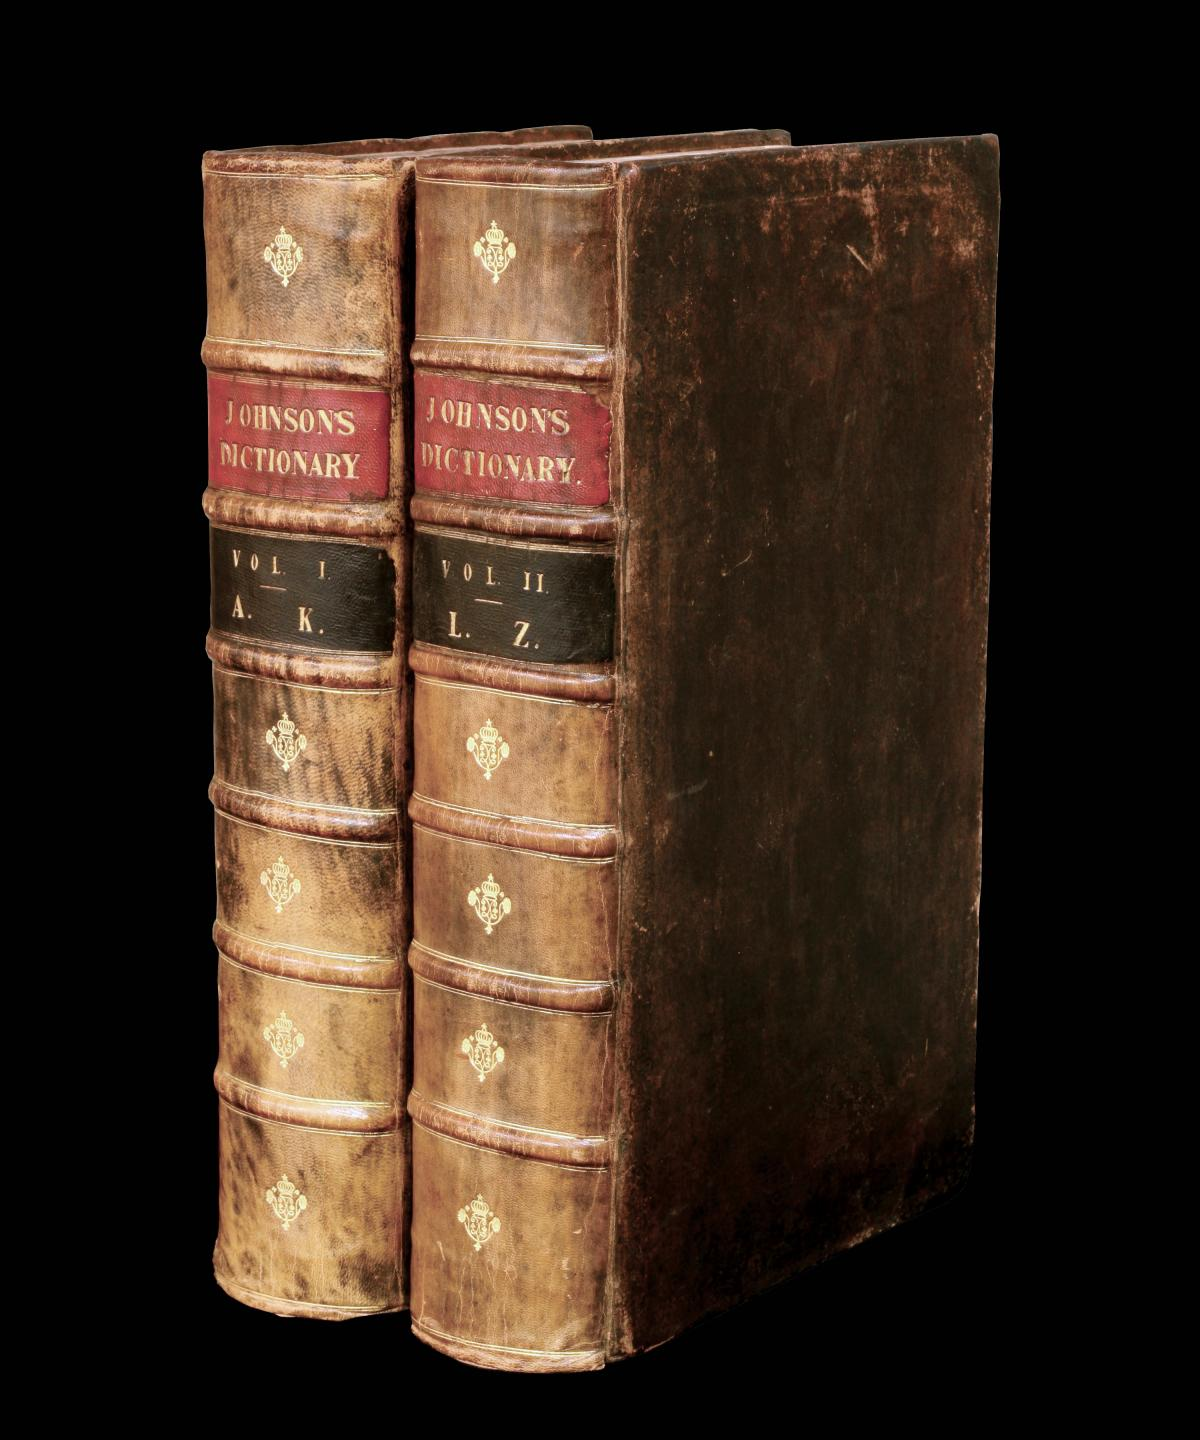 two volumes of the 1755 dictionary, bound in brown leather with red, black and gold bands on the spines